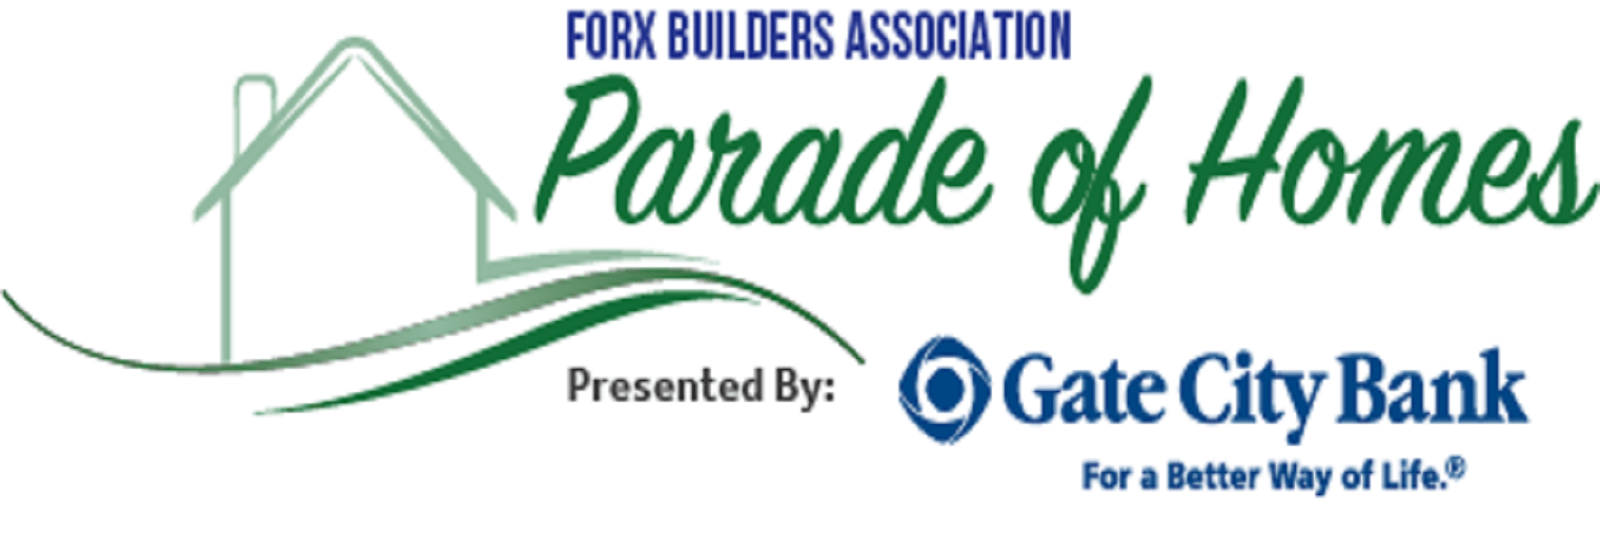 Forx-Builder-Logo_w-GCB-large-w1600.png